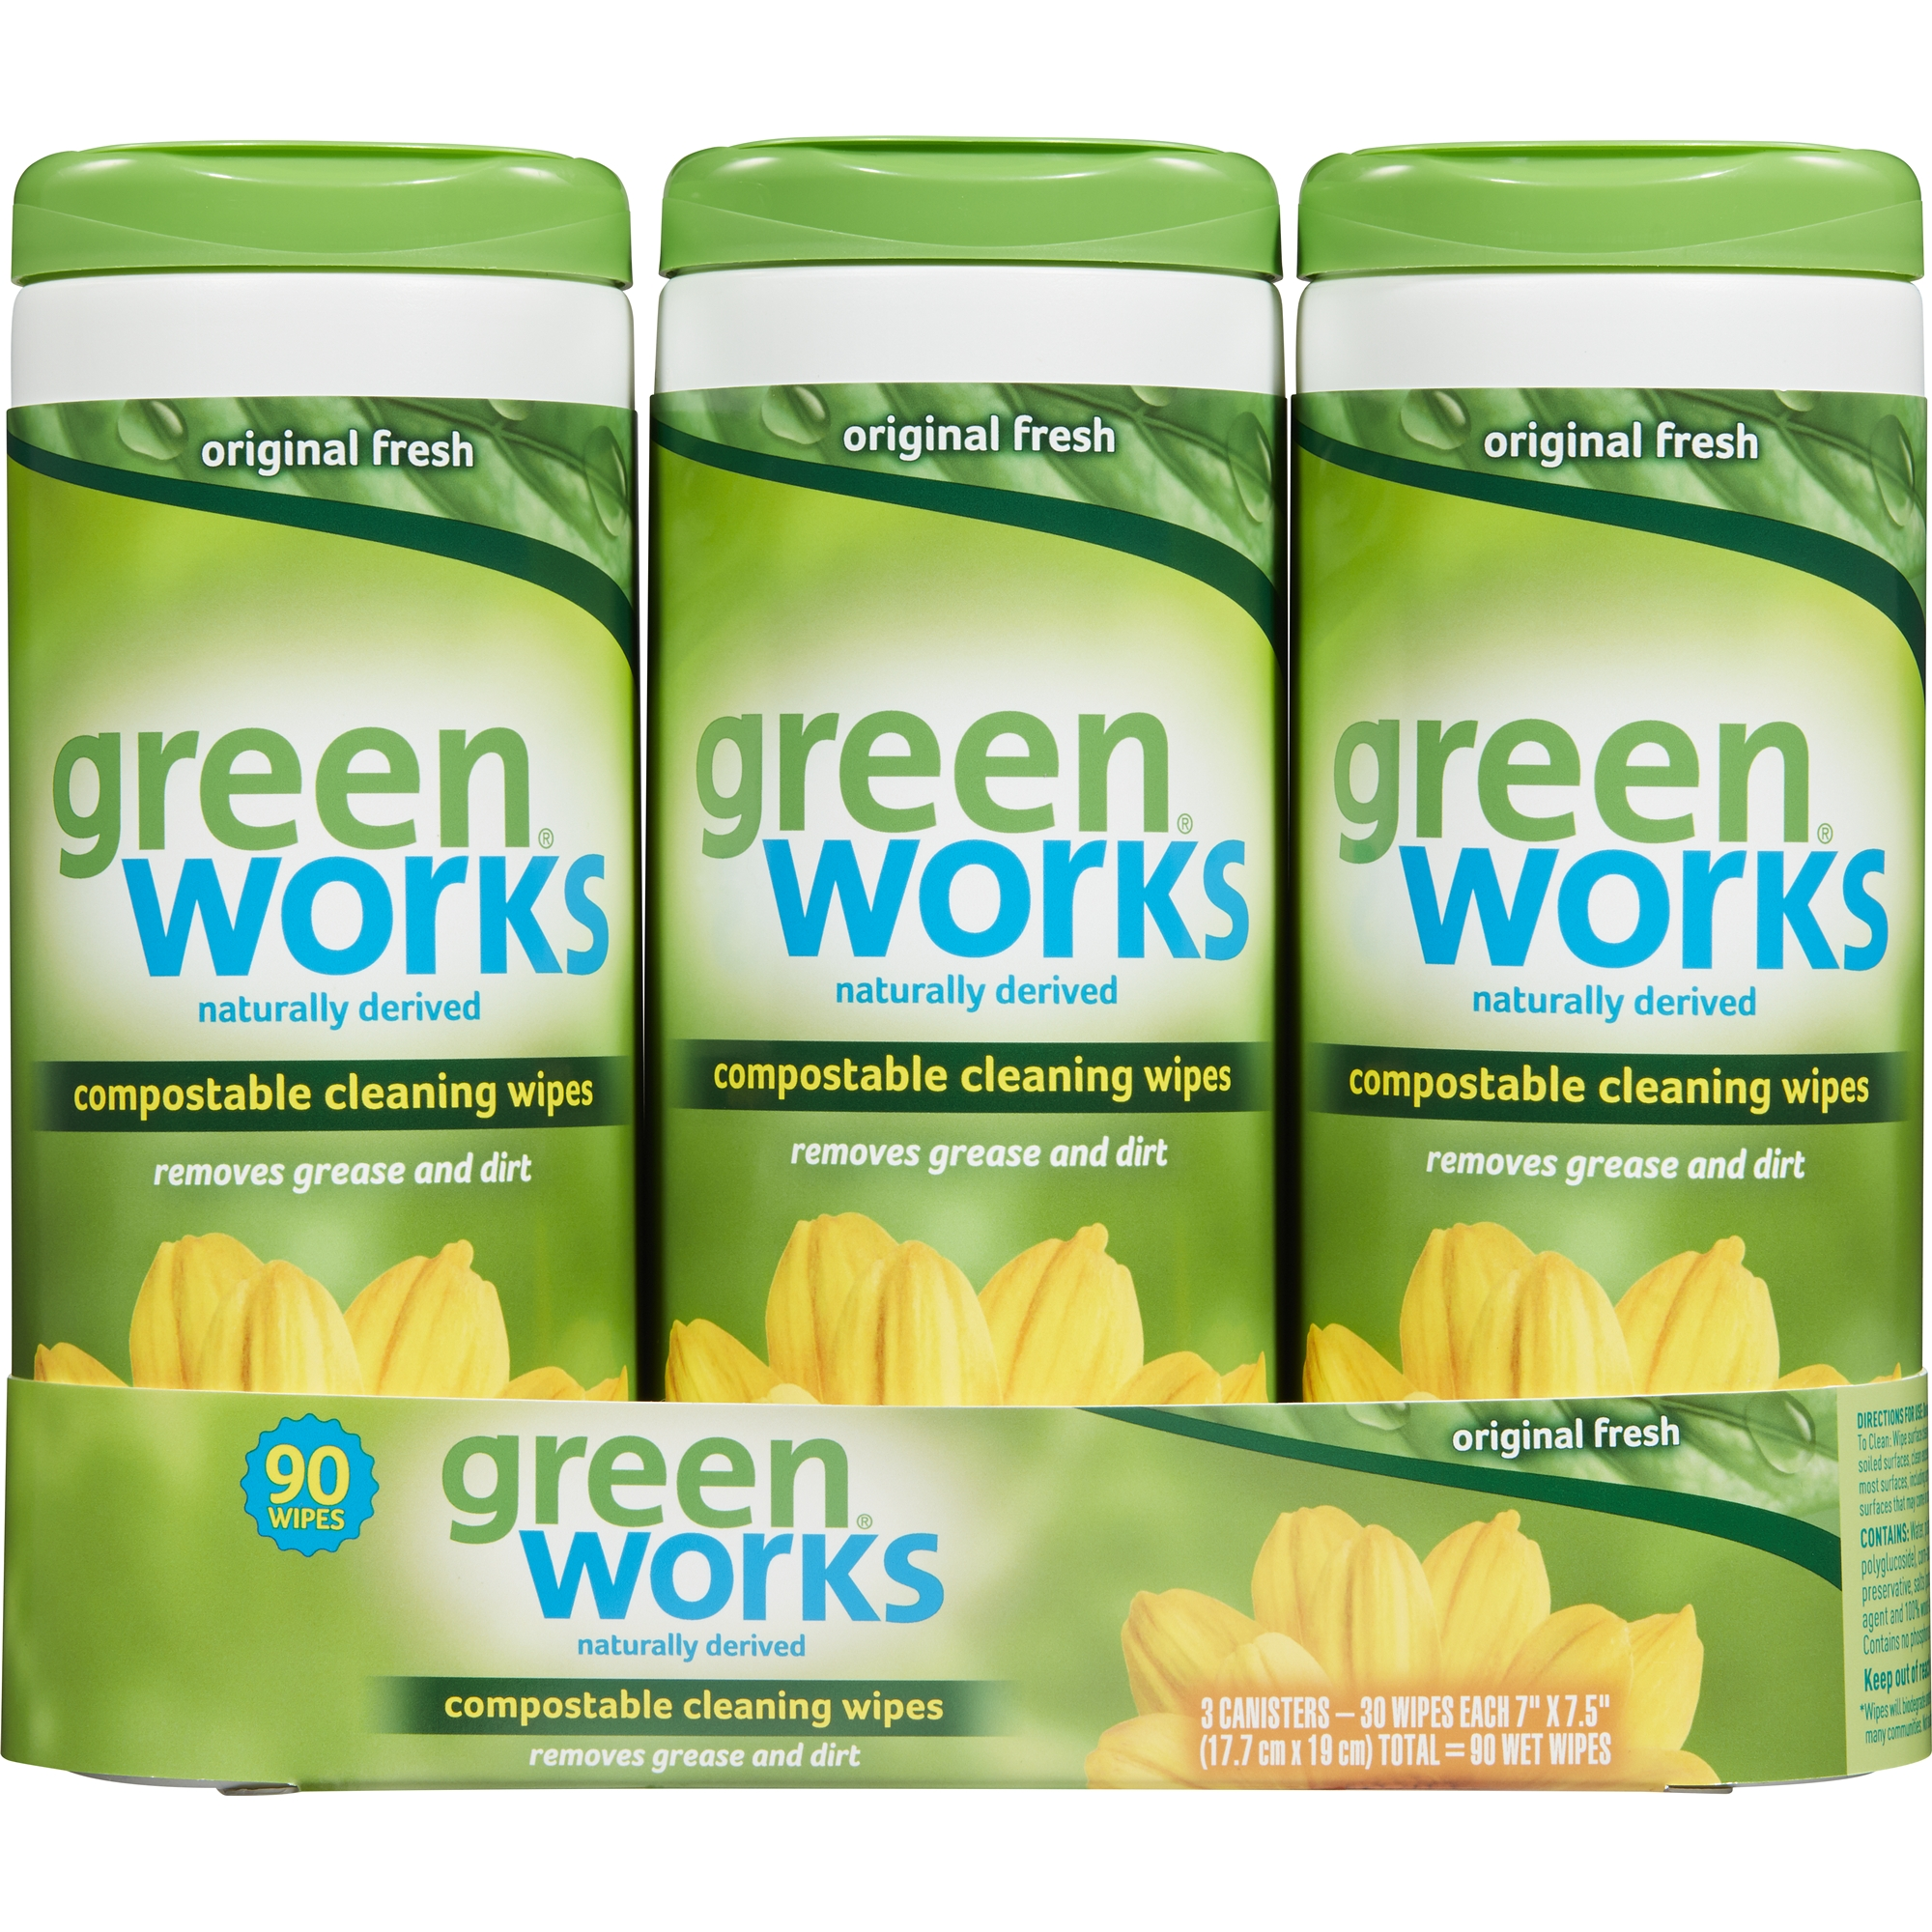 Green Works Compostable Cleaning Wipes, Biodegradable Cleaning Wipes - Original Fresh, 90 ct